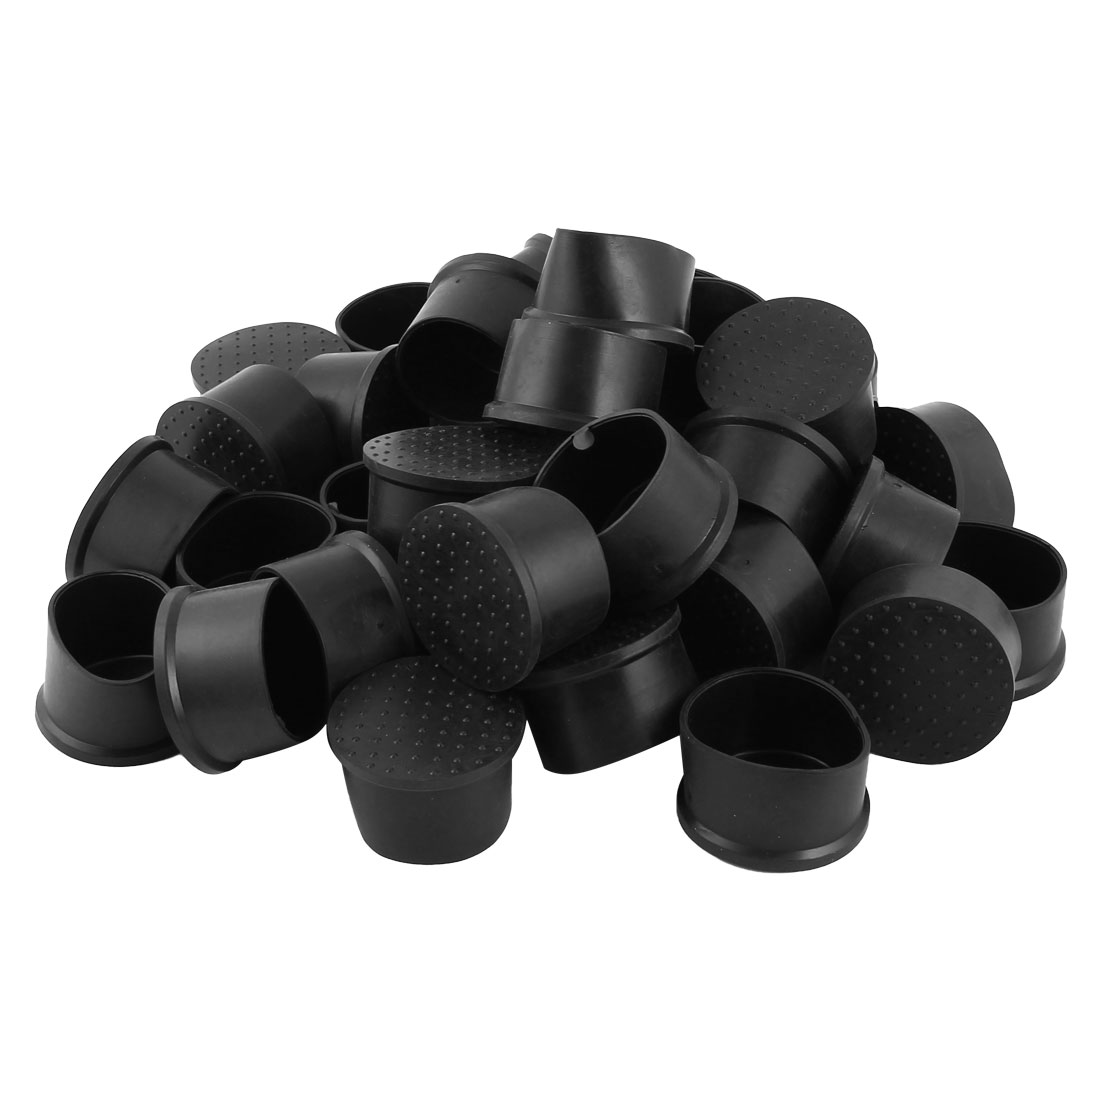 Rubber Furniture Chair Table Foot Pad Cap Cover Protector 50mm Hole Dia 36 Pcs